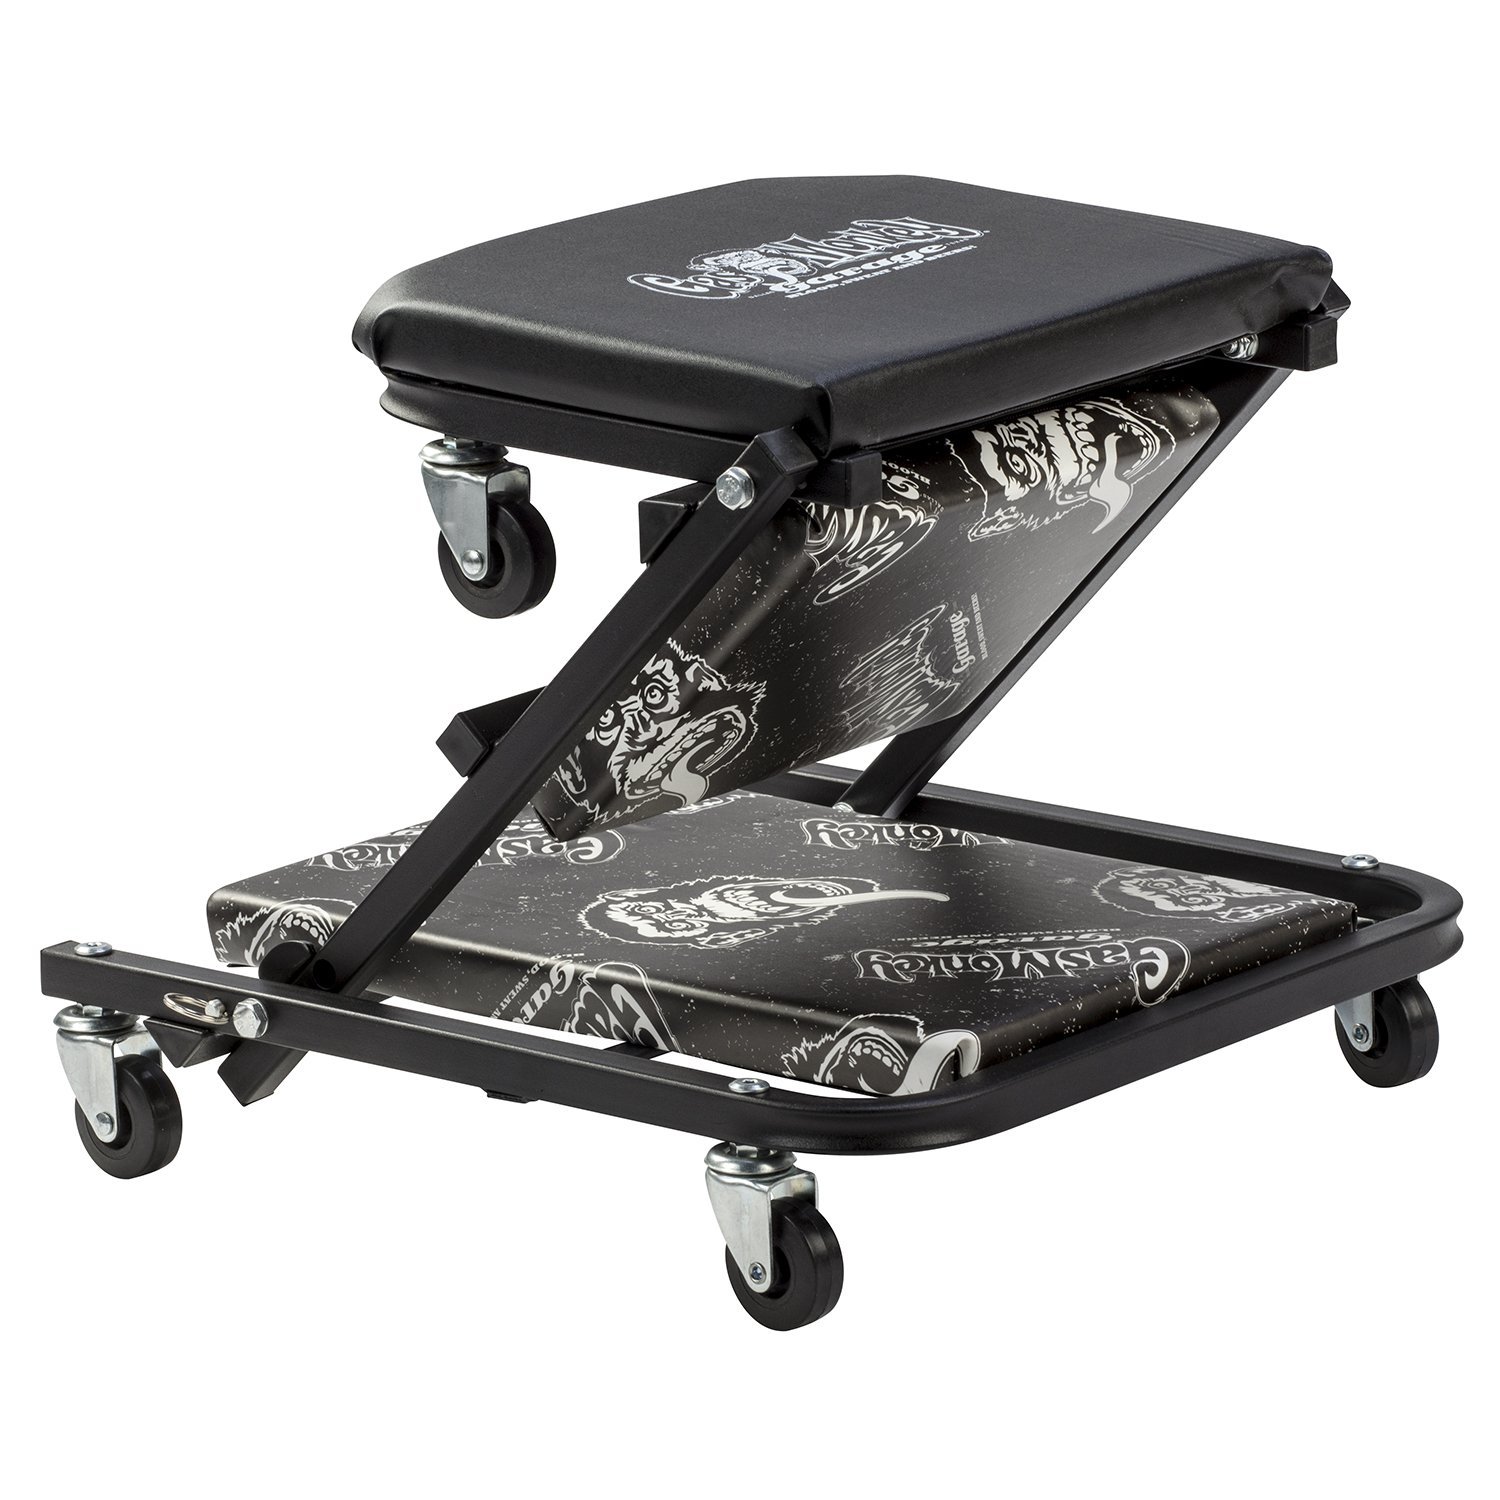 Gas Monkey Z Creeper Mechanic Seat Six Rolling Casters with 300 Lbs Capacity for Automotive Car Garage